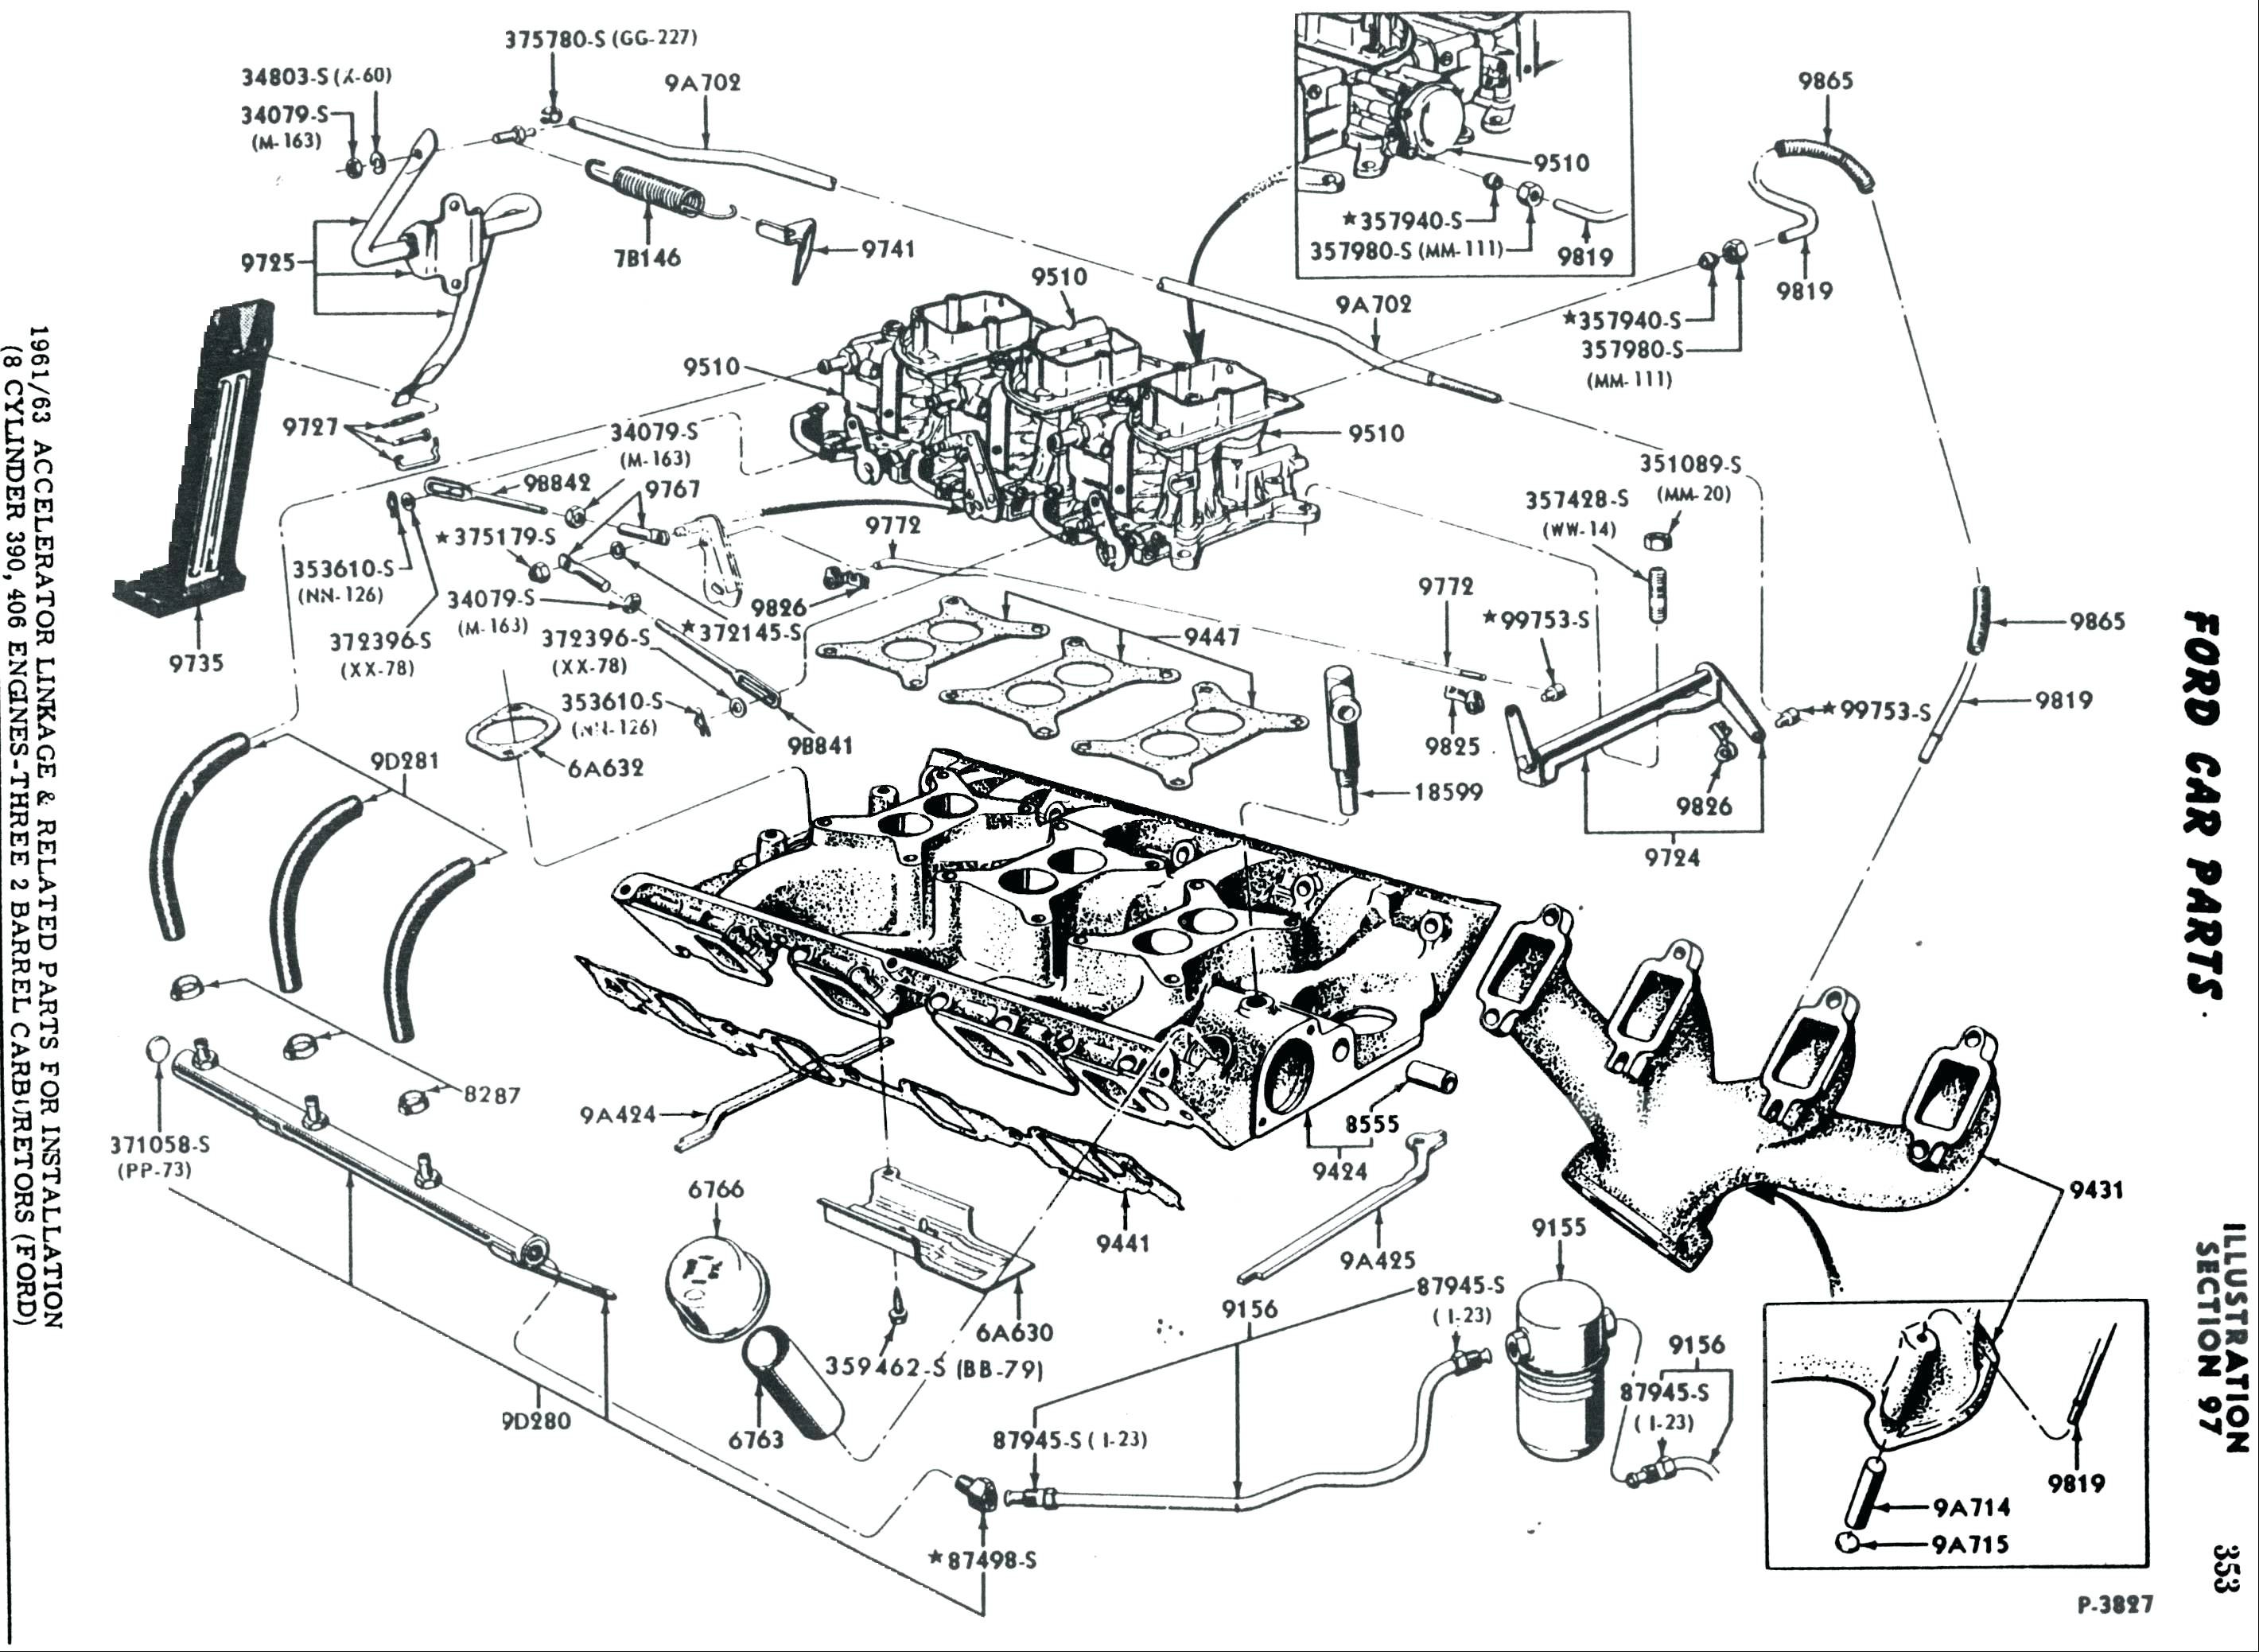 Diagram Of The 2009 Toyota Camry Trusted Wiring 1996 Fuse Engine Introduction To Electrical 1995 Box